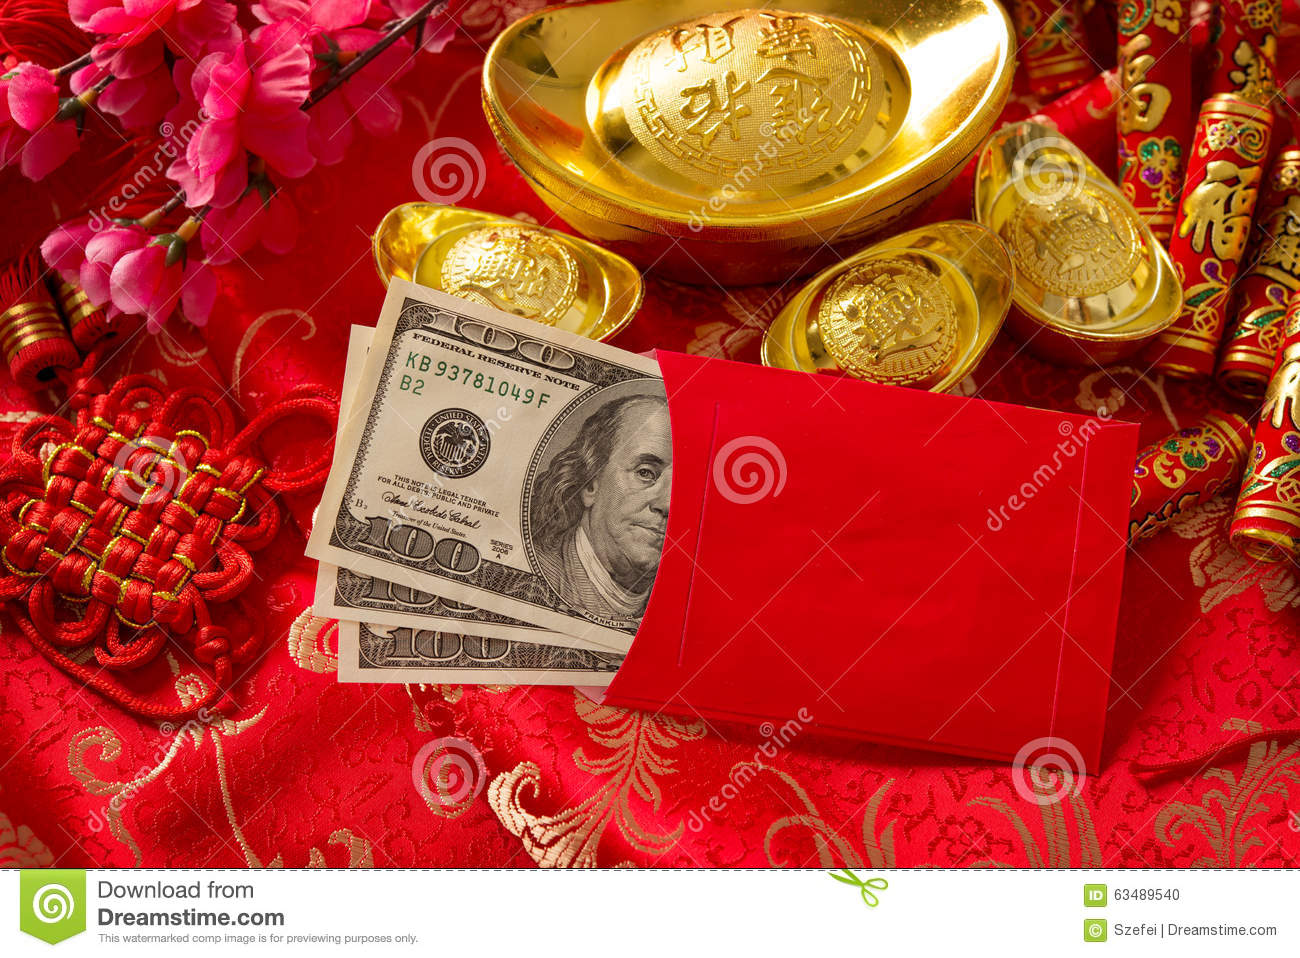 chinese new year red envelope with dollars inside - Chinese New Year Red Envelope